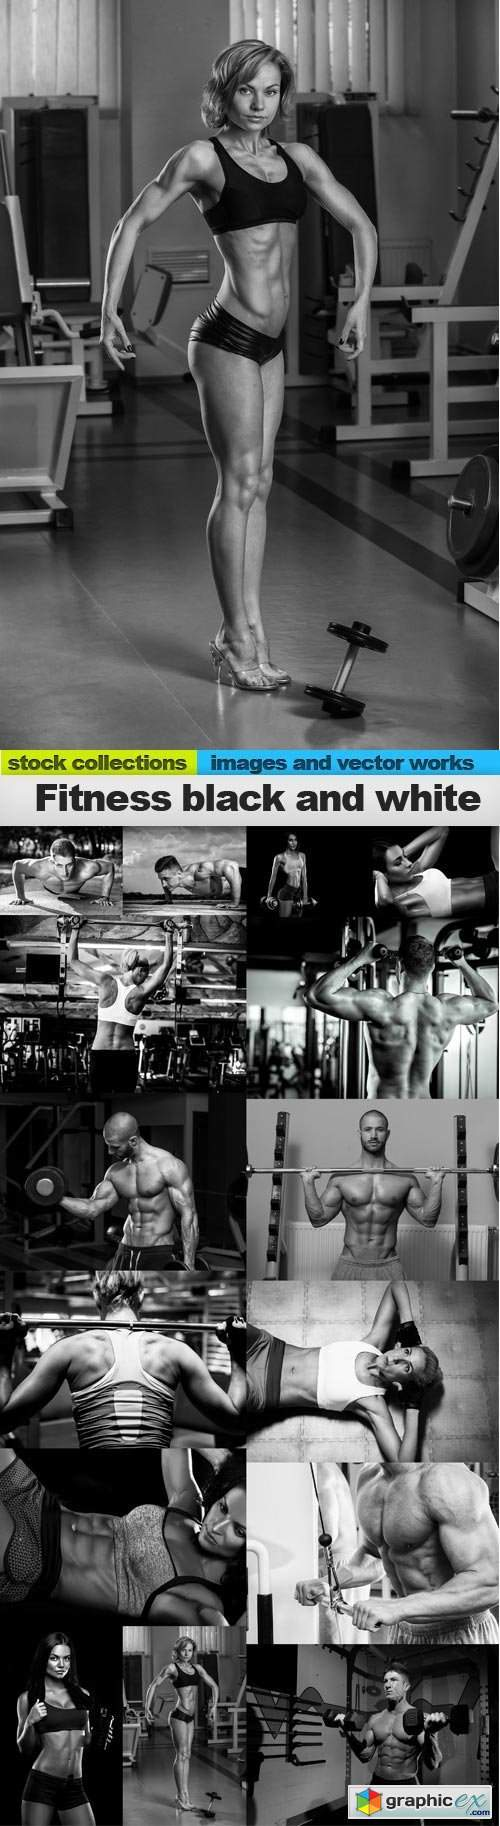 Fitness black and white, 15 x UHQ JPEG